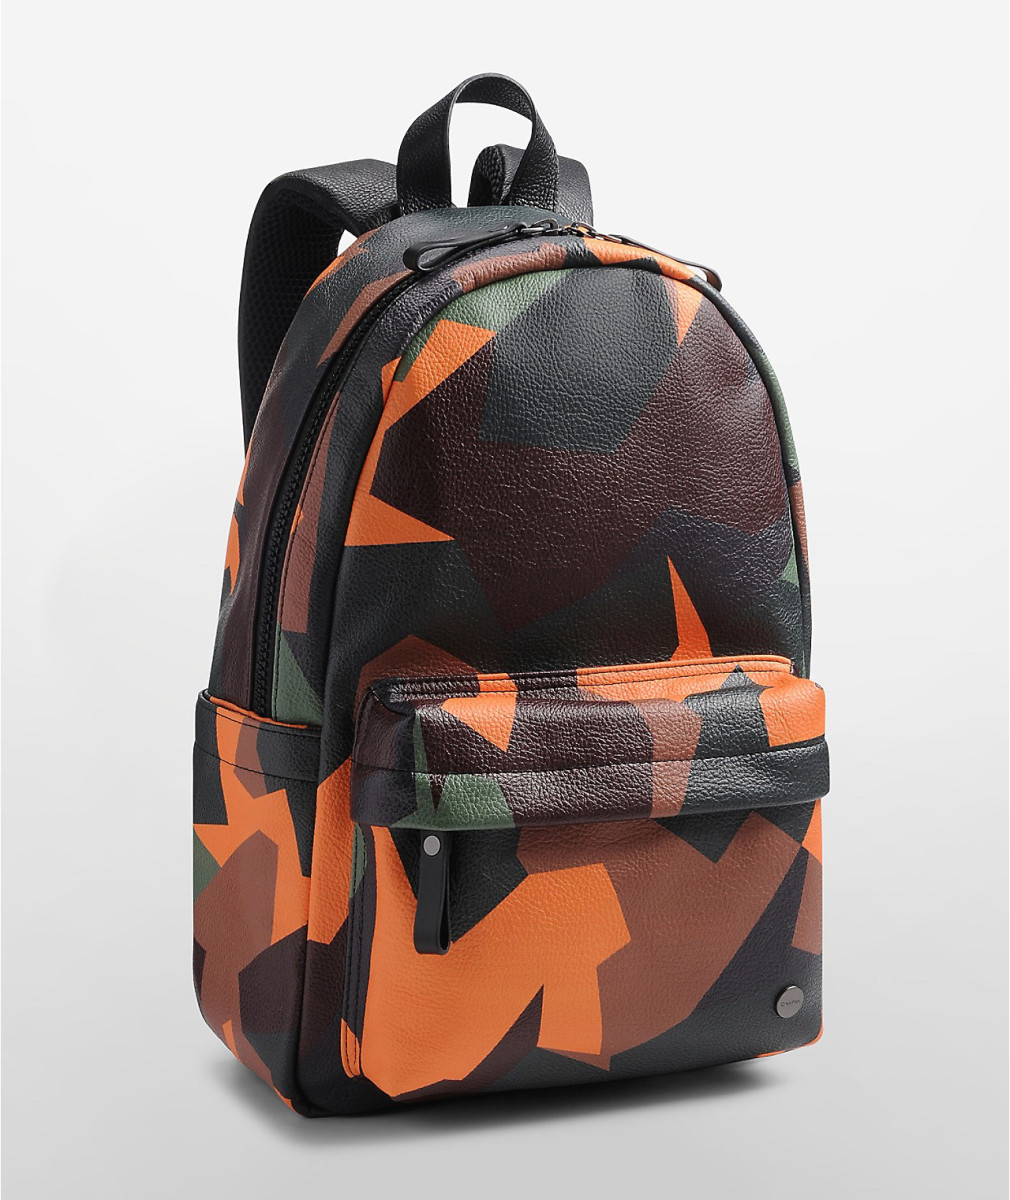 freshness-finds-luxury-camo-backpack-06.jpg